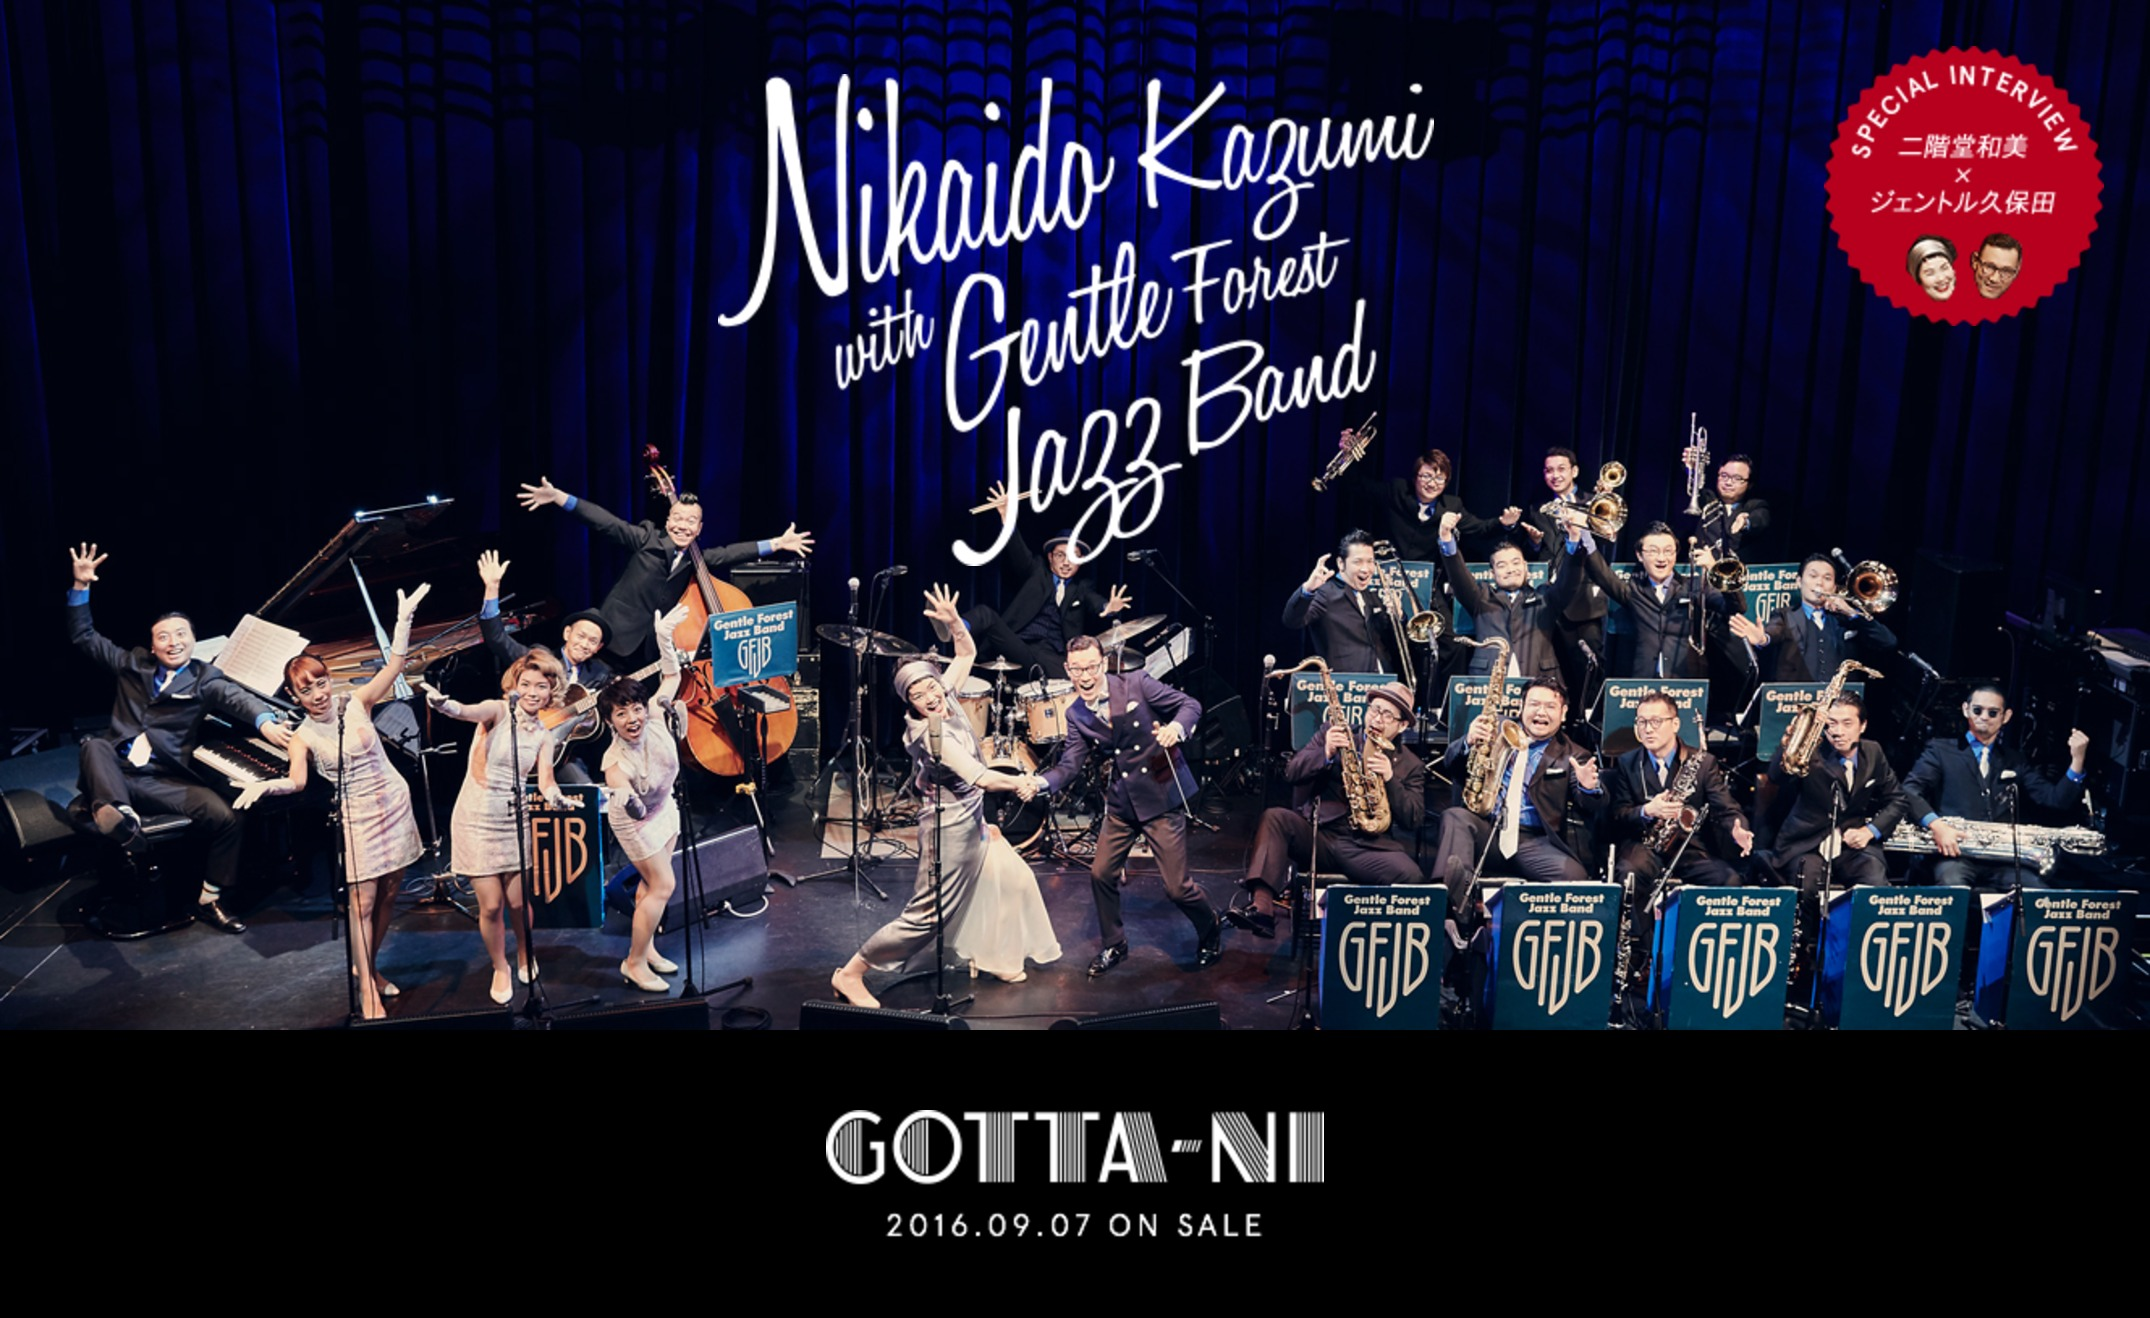 二階堂和美 with Gentle Forest Jazz Band『GOTTA-NI』特設サイト